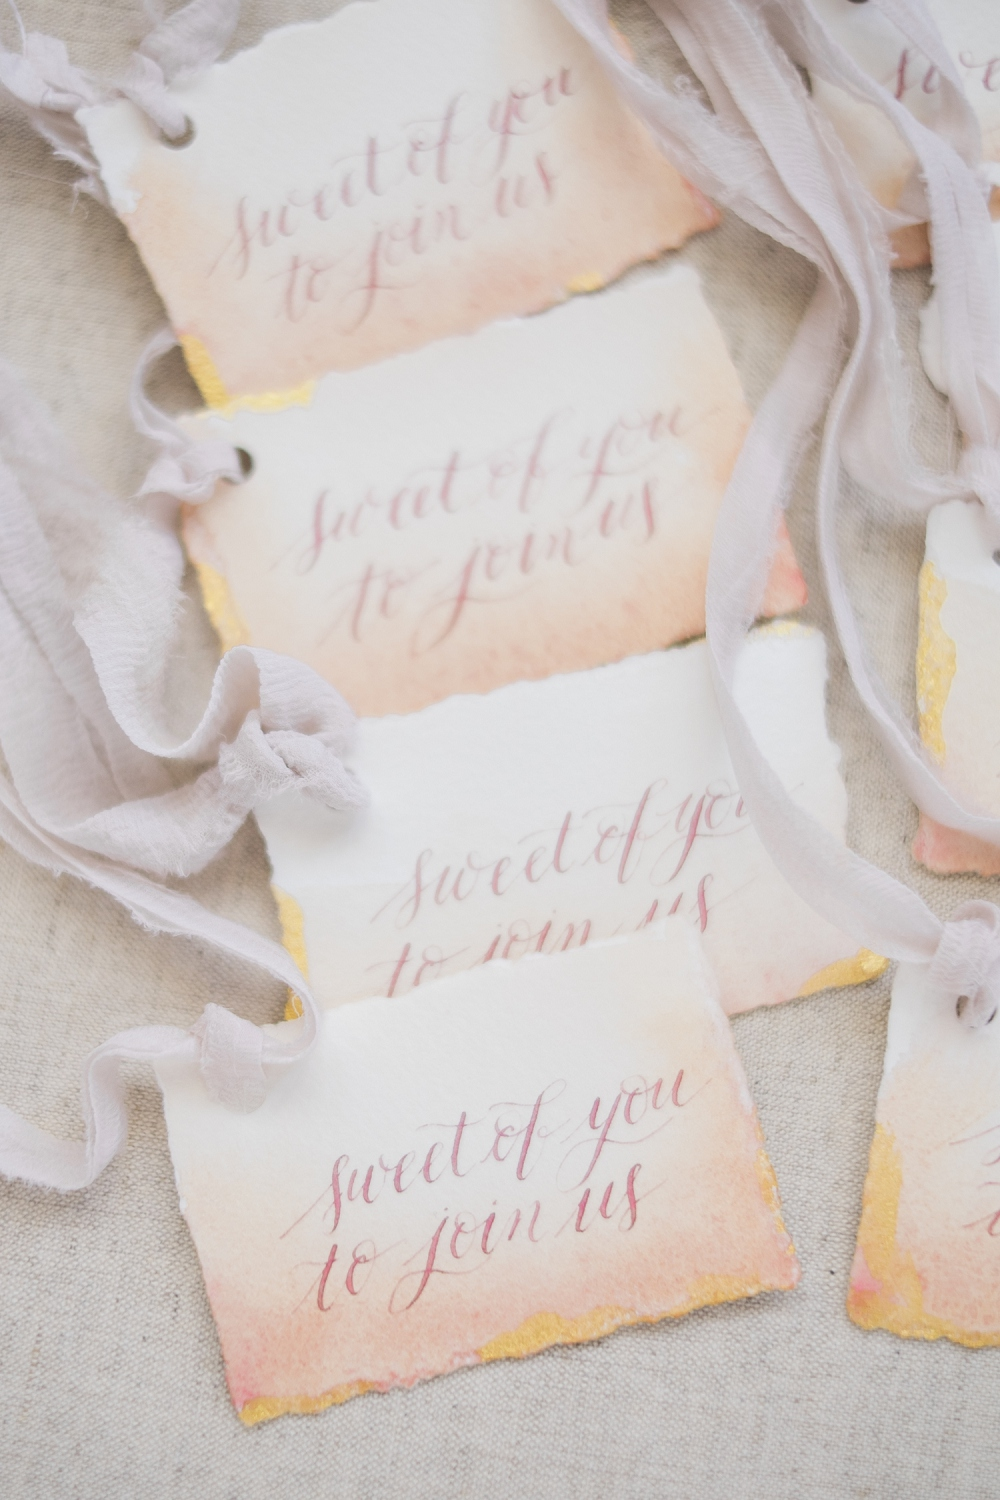 Calgary Banff Wedding Calligrapher Debbie Wong favor tag 2.JPG